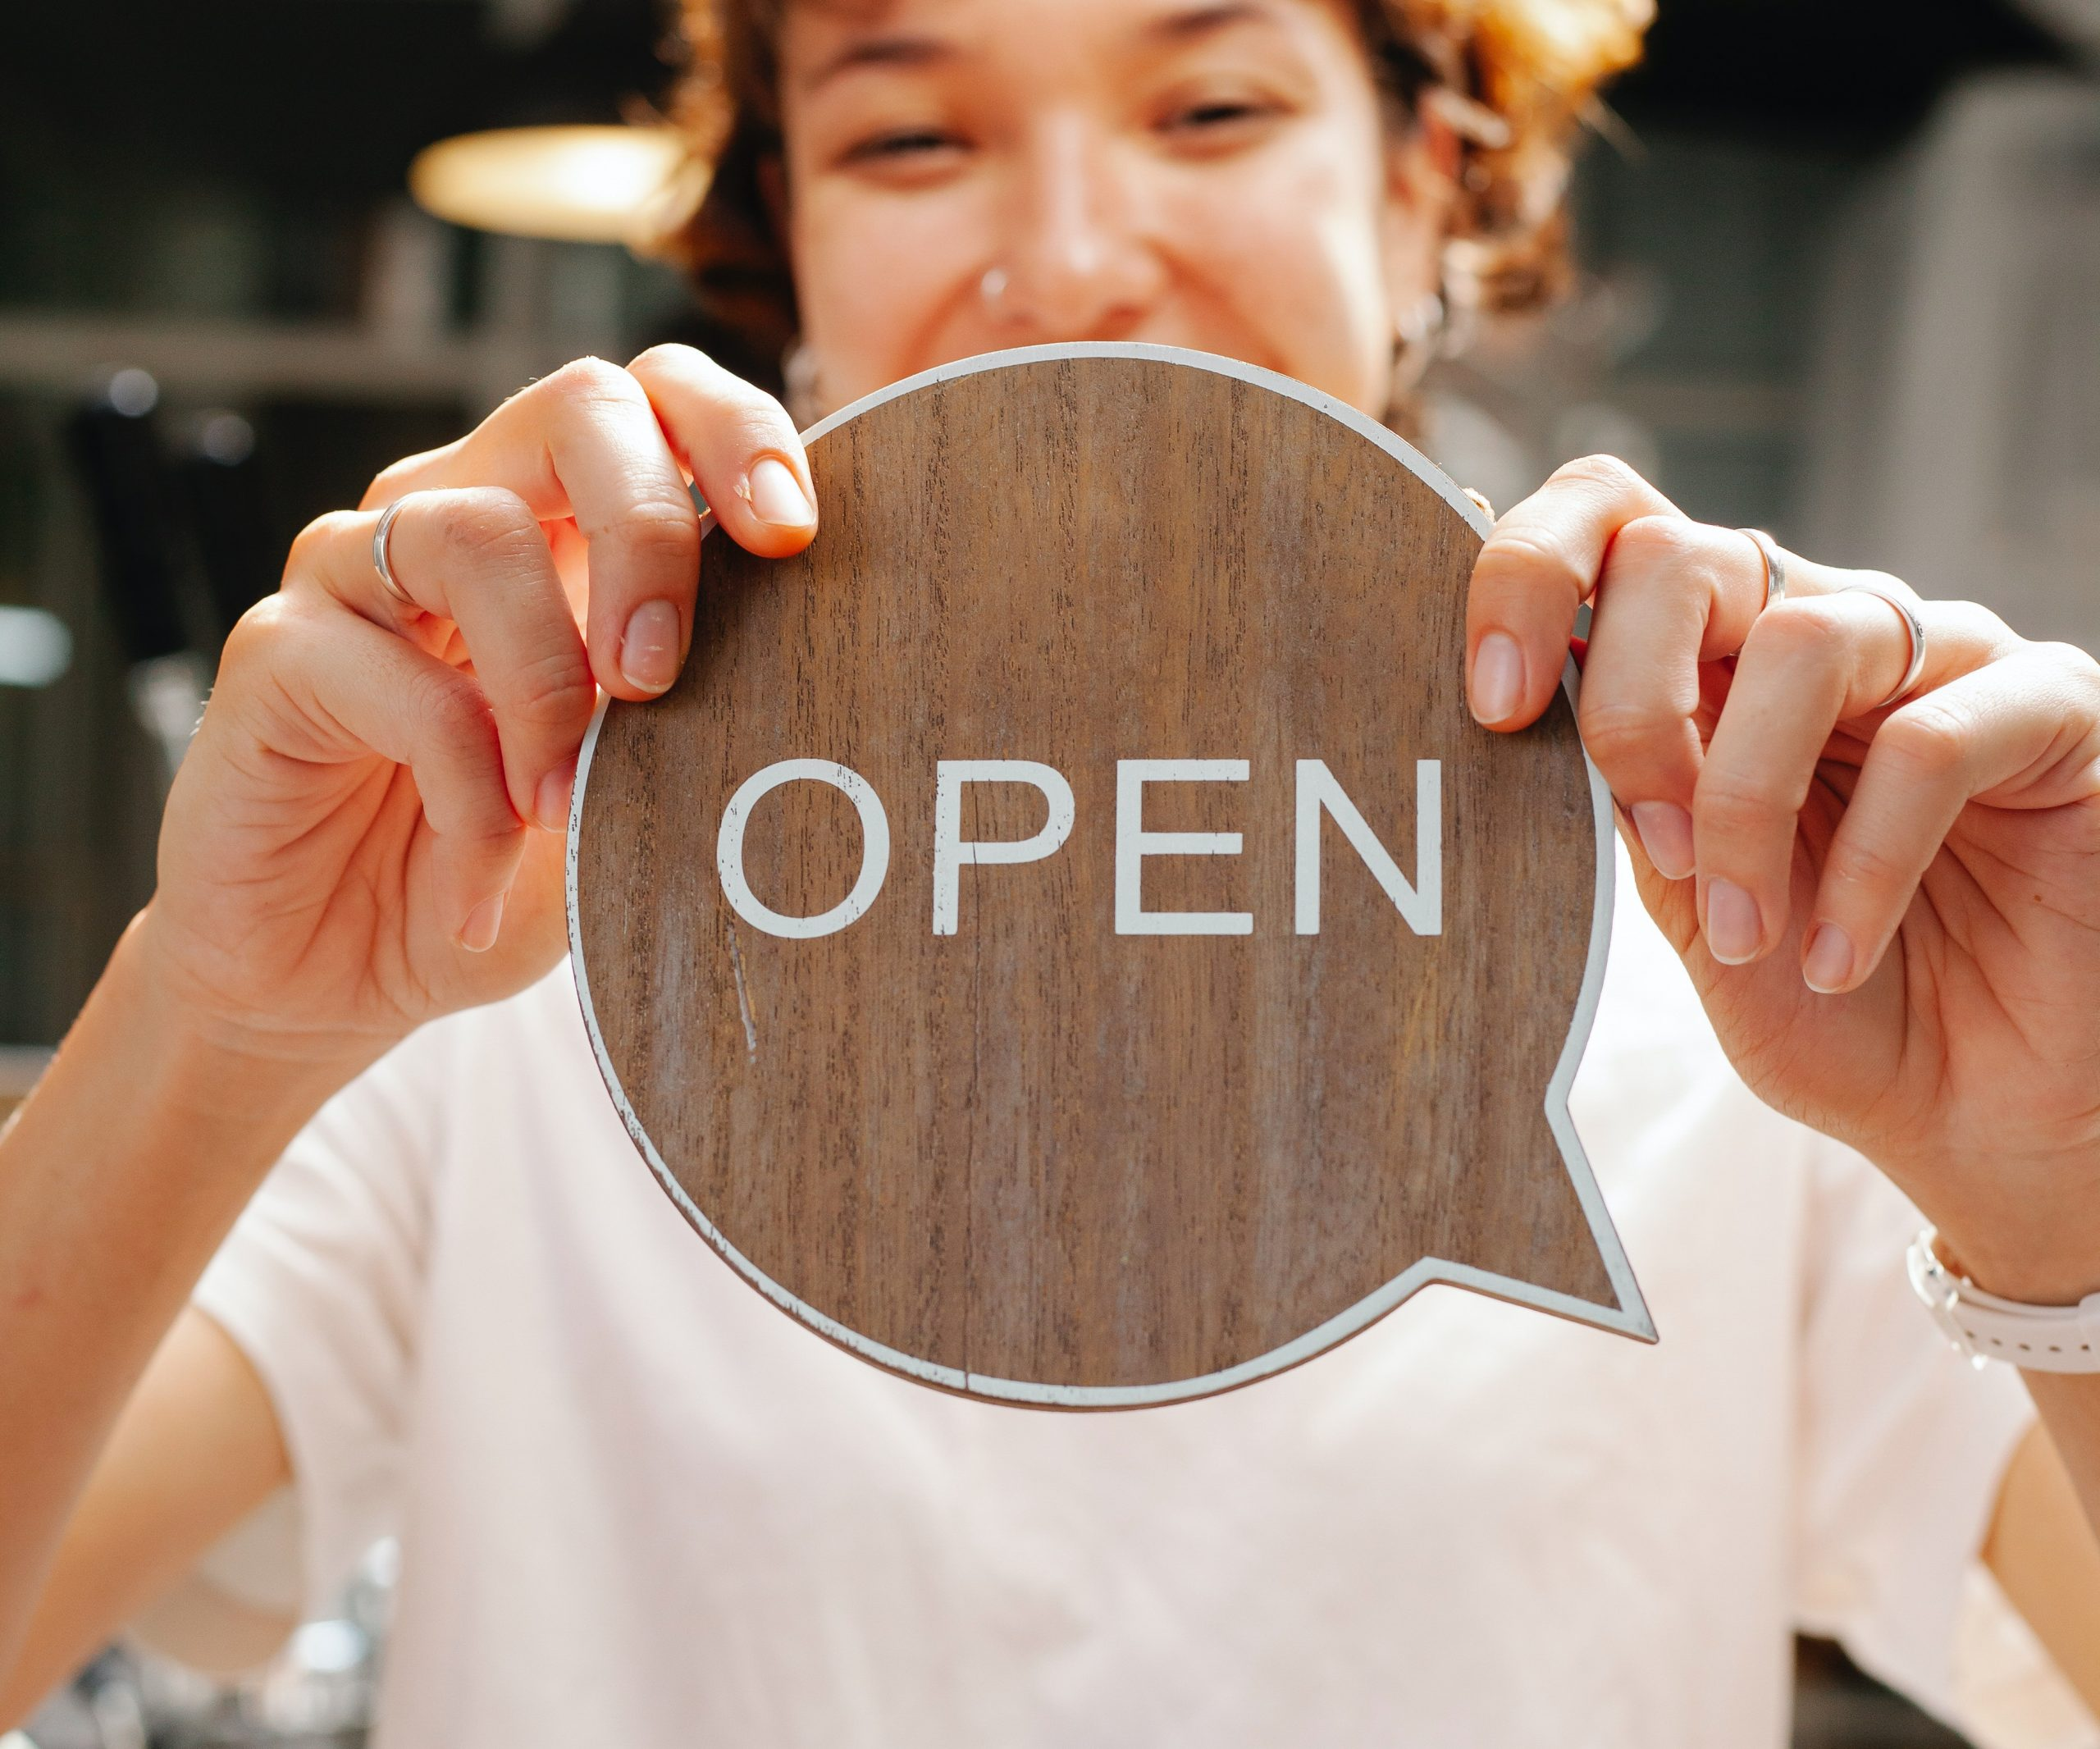 How to Start Your Own Business (Even During a Pandemic)